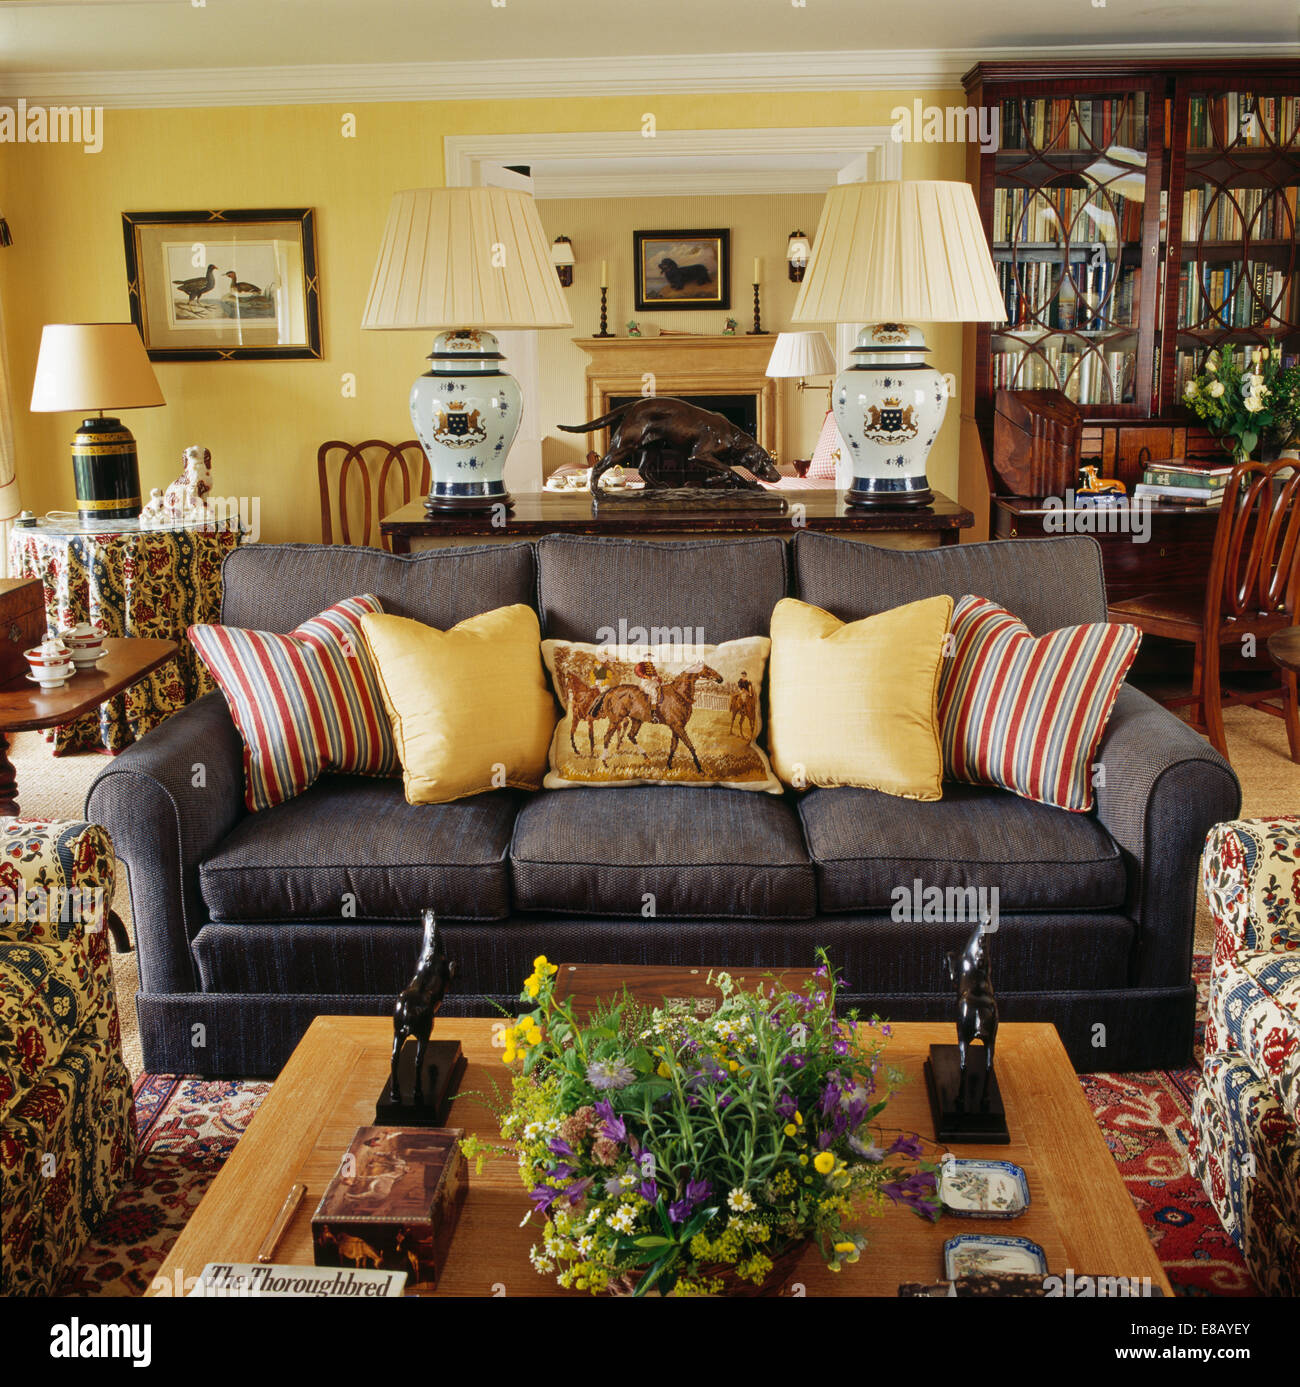 Pale Yellow And Striped Cushions On Dark Grey Sofa In Yellow Country